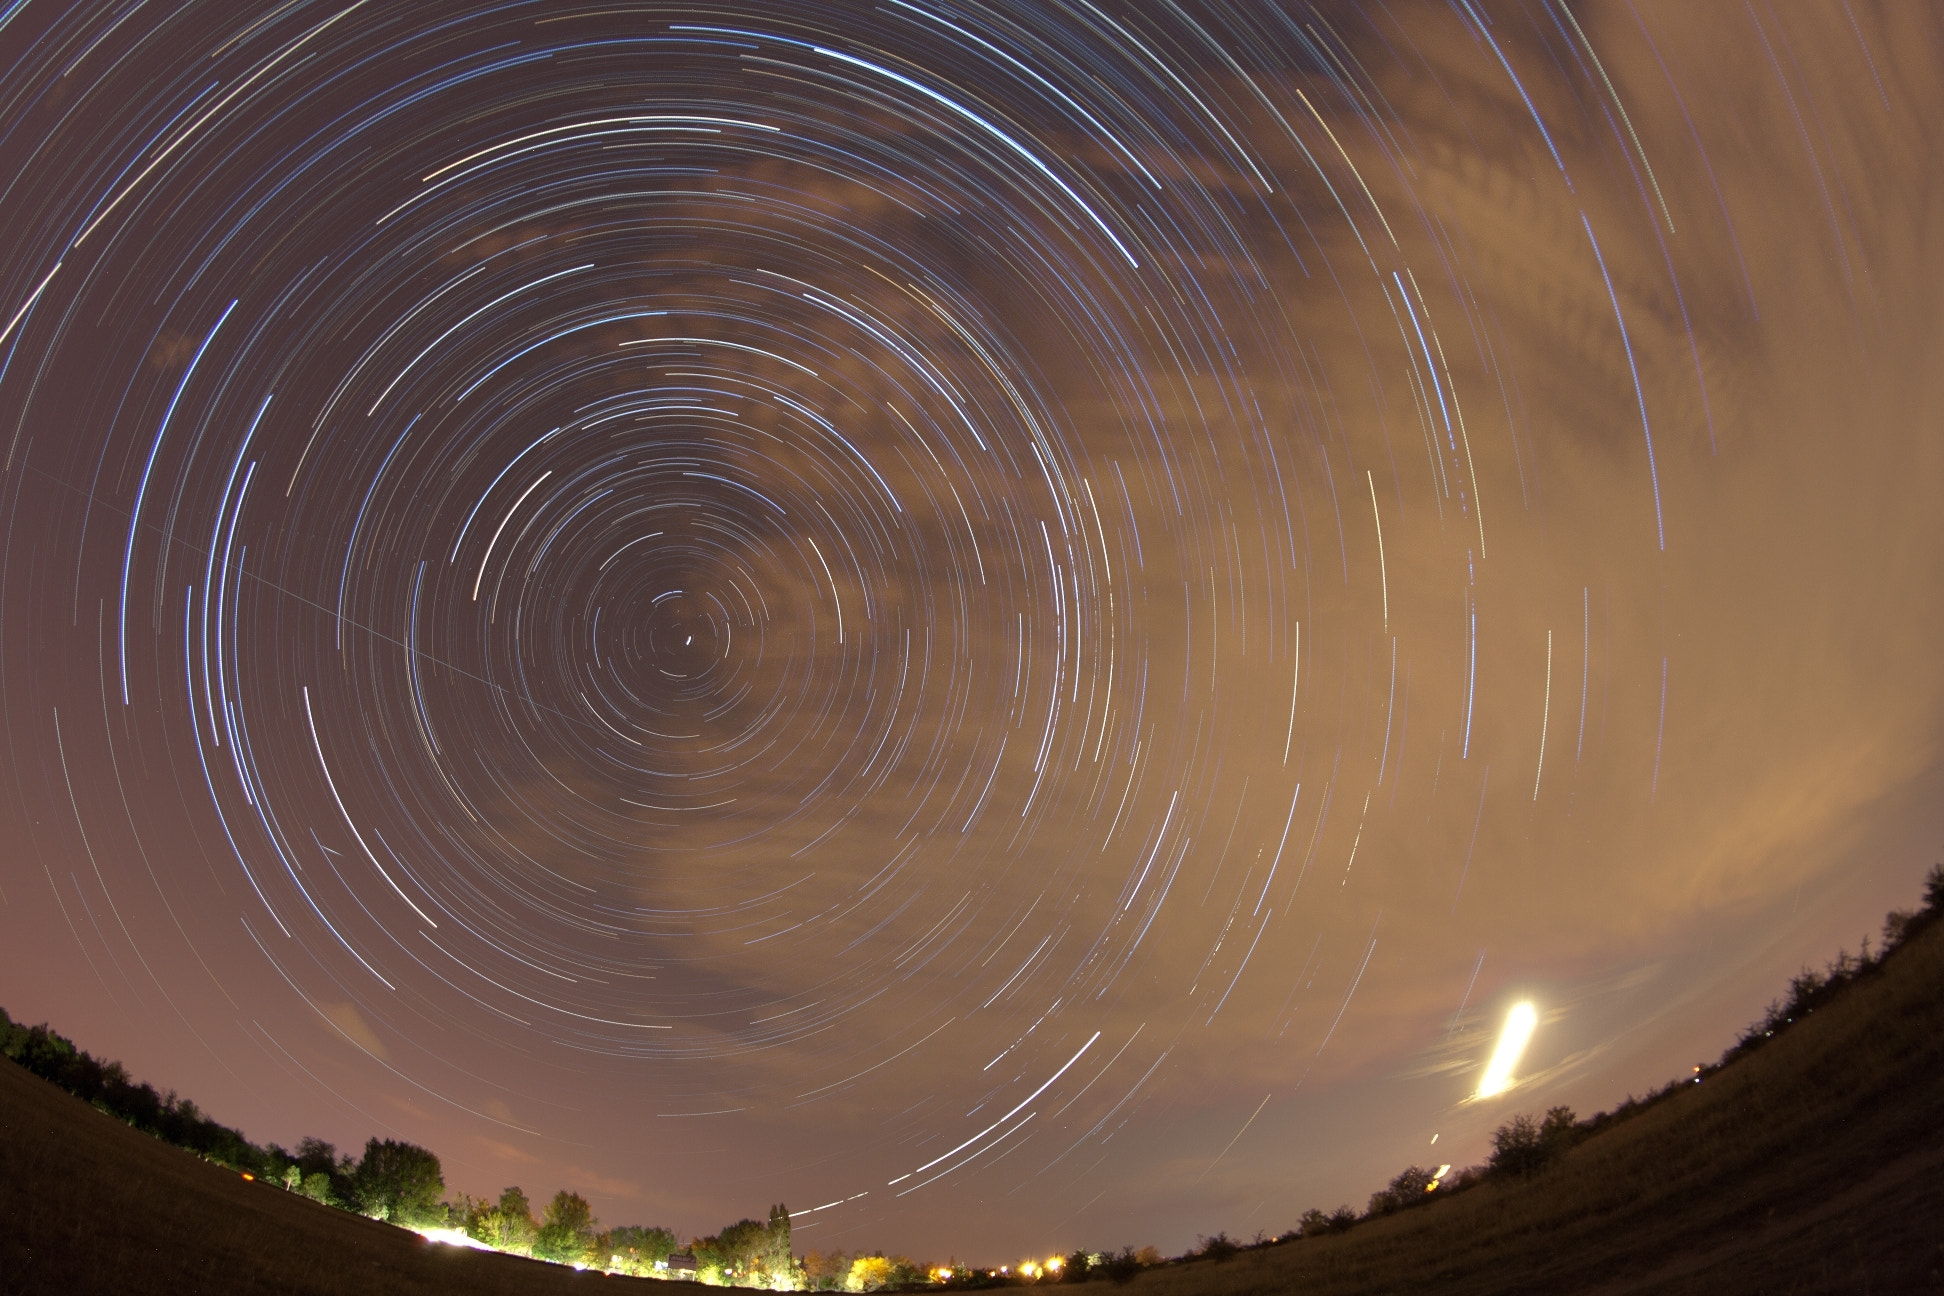 Photograph Startrails by György Soponyai on 500px